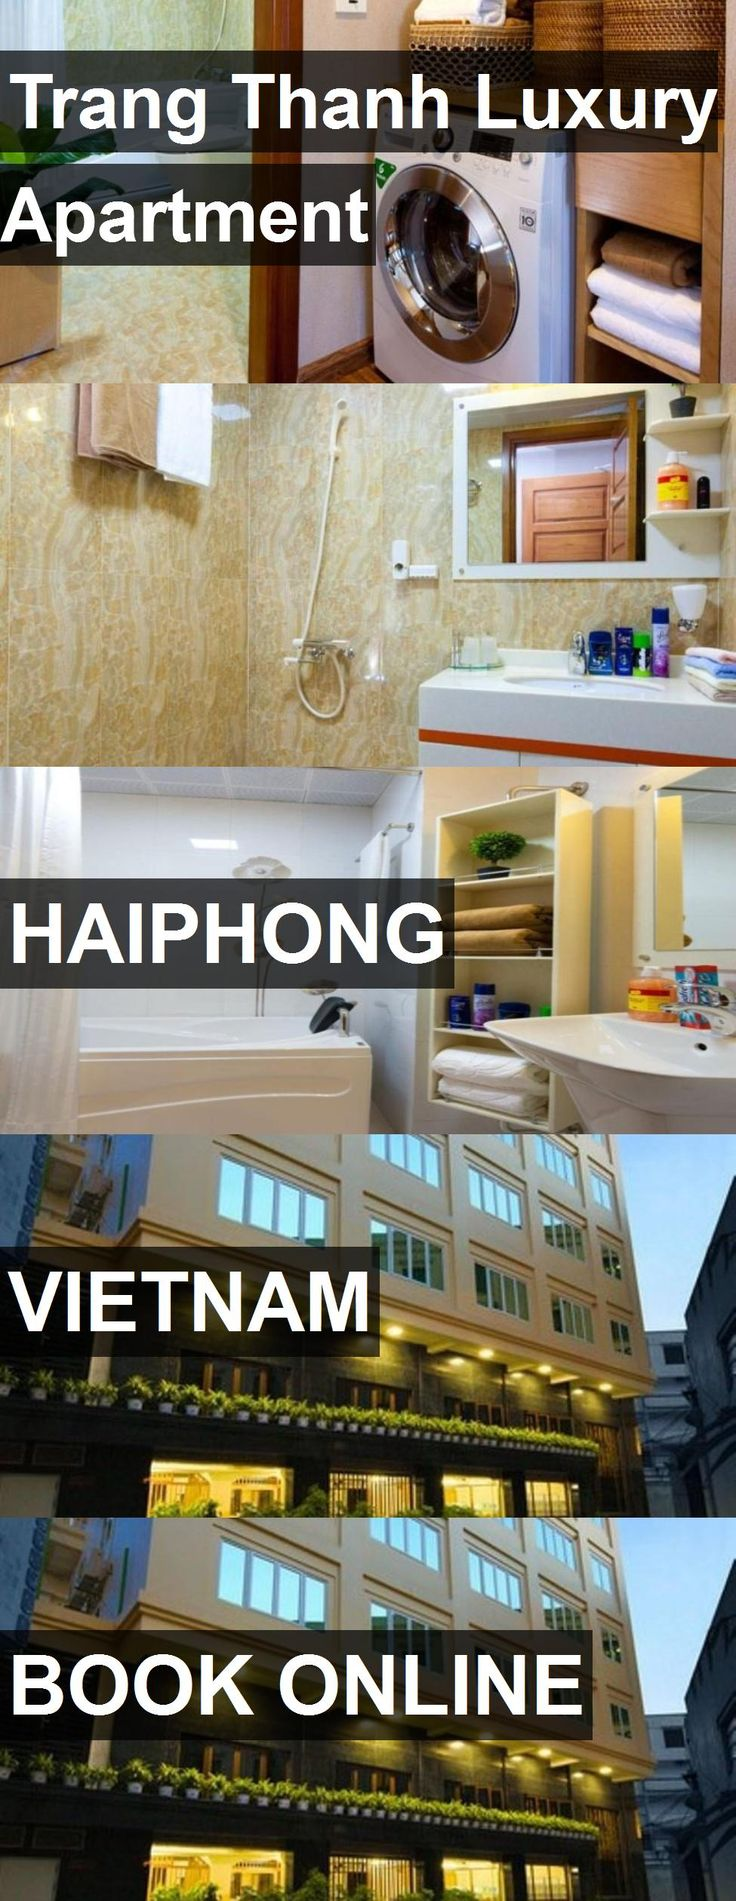 Hotel Trang Thanh Luxury Apartment in Haiphong, Vietnam. For more information, photos, reviews and best prices please follow the link. #Vietnam #Haiphong #TrangThanhLuxuryApartment #hotel #travel #vacation